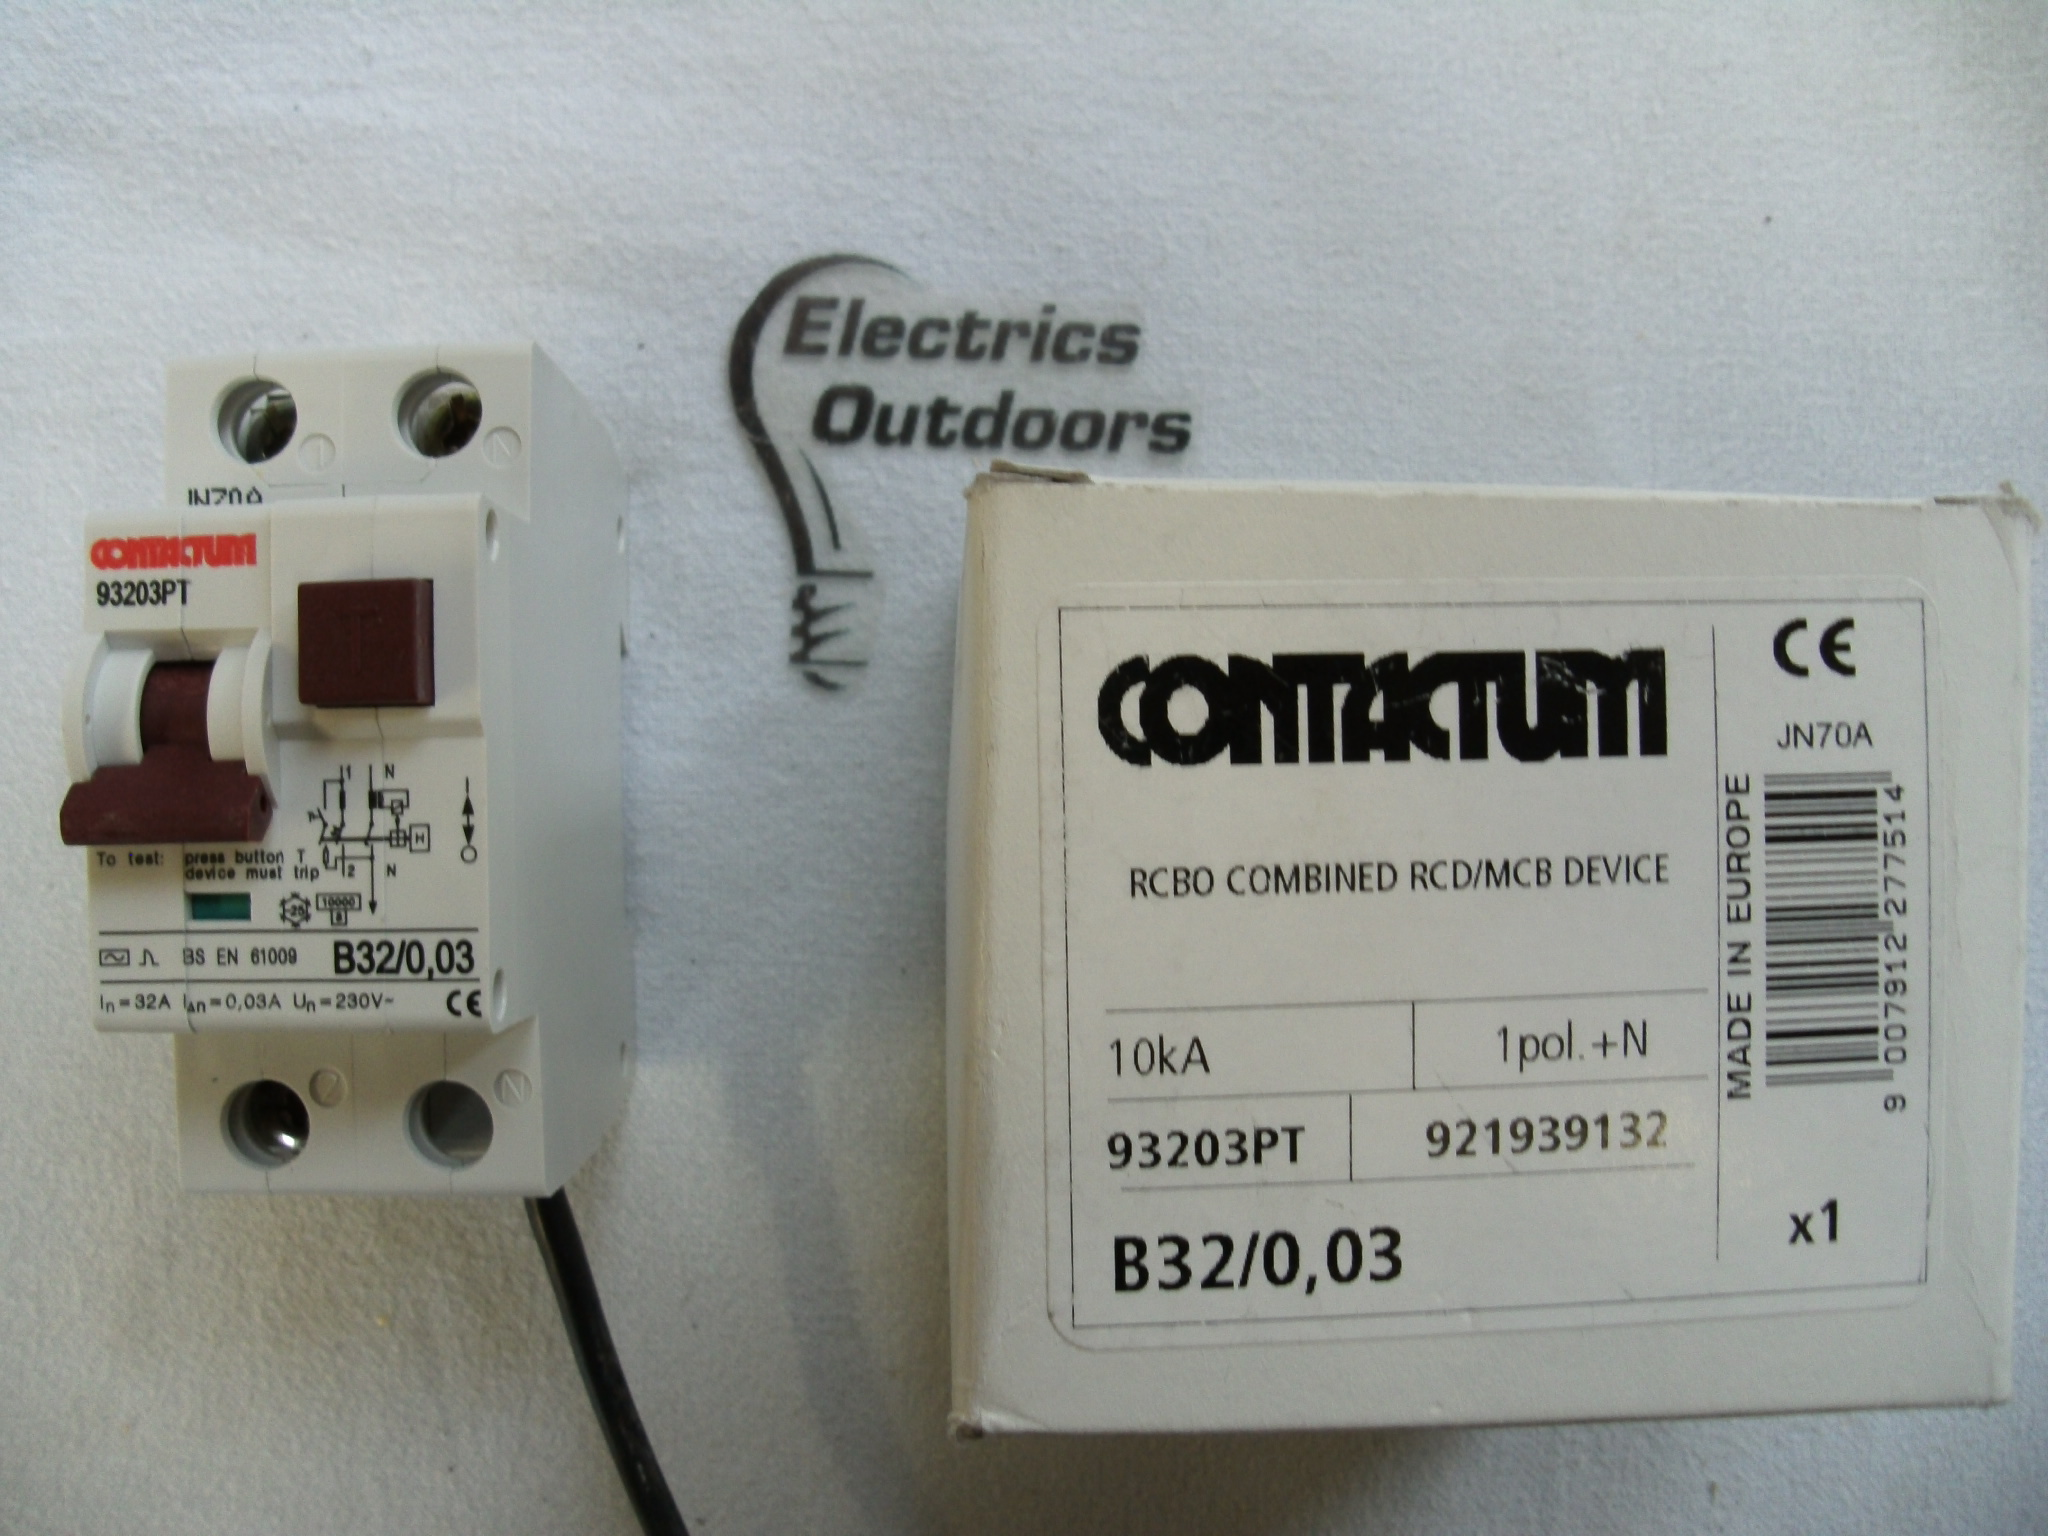 CONTACTUM 32 AMP TYPE B 30 mA DOUBLE POLE RCBO RCD MCB 93203PT B32/0.03 F&G 2 A